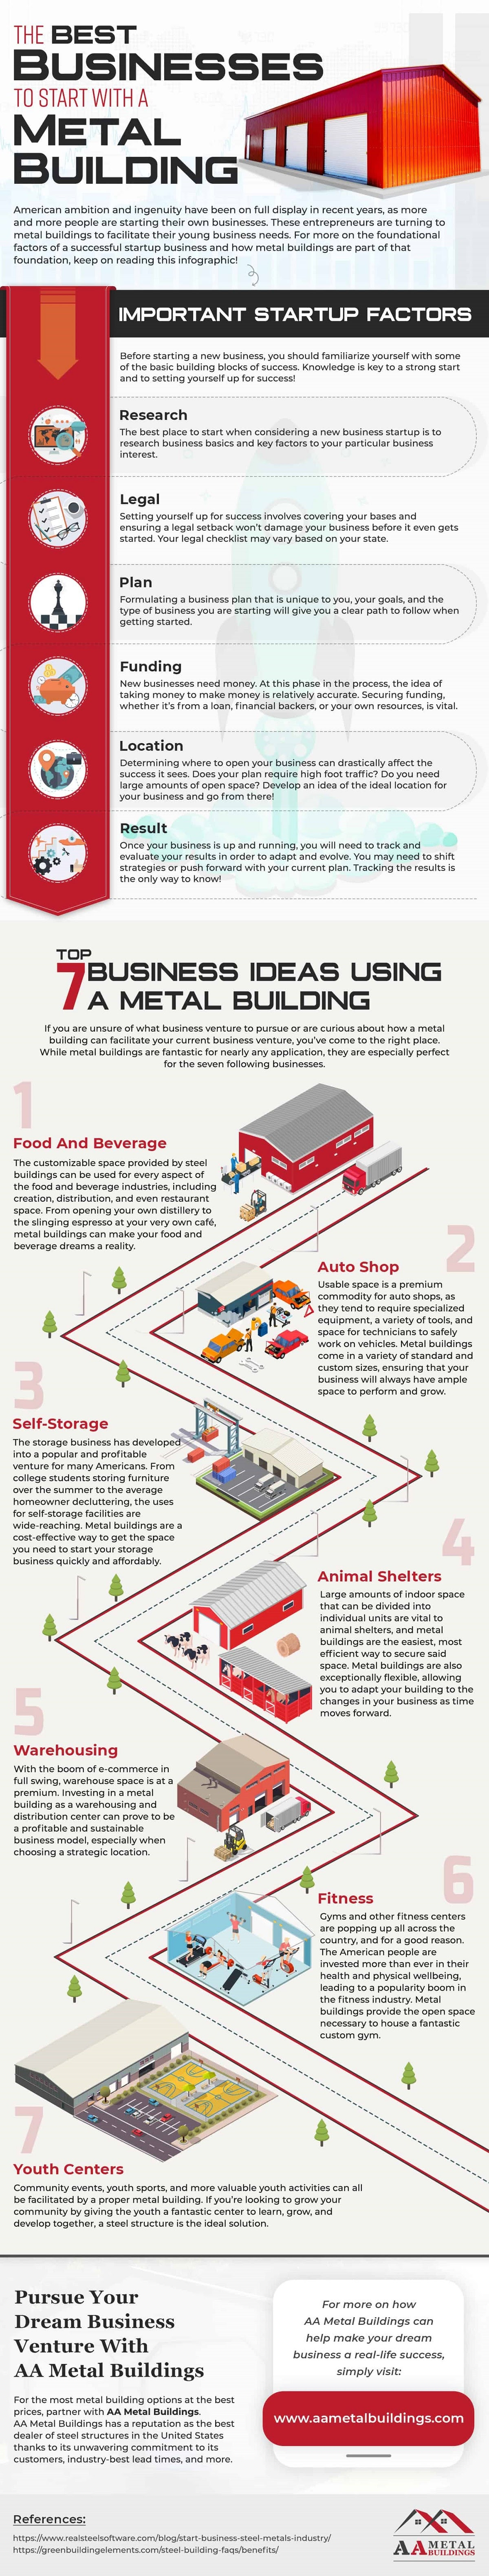 the-best-businesses-to-start-with-a-metal-building-infographic